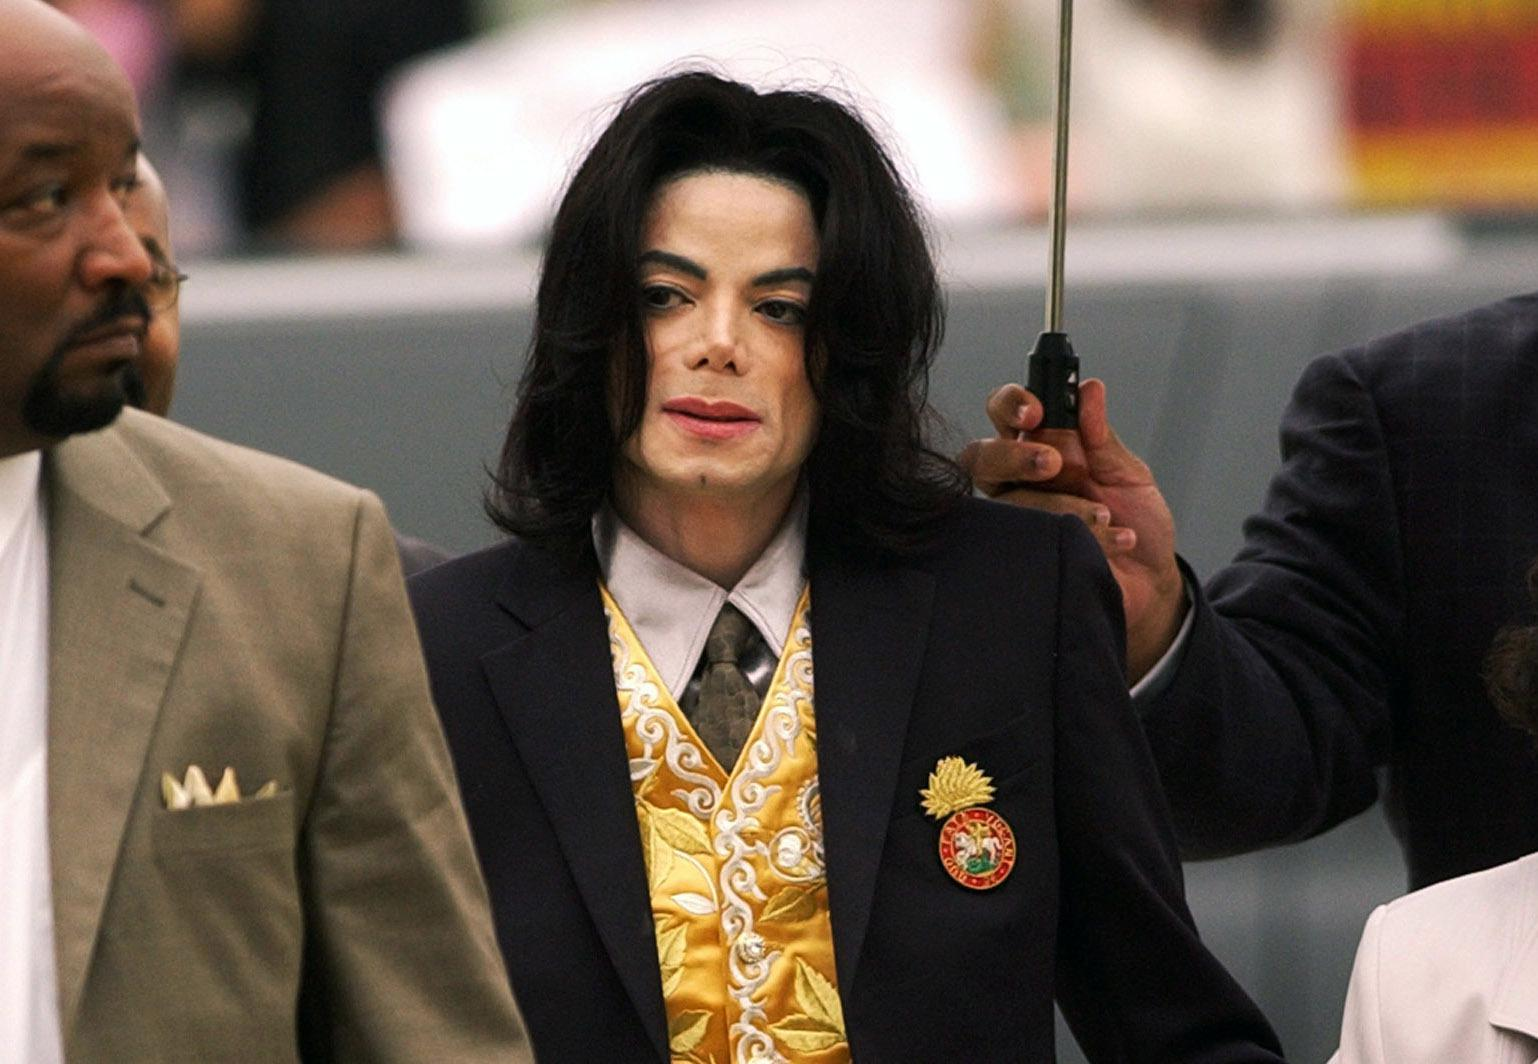 After years, court hands tax win to Michael Jackson heirs – The Associated Press